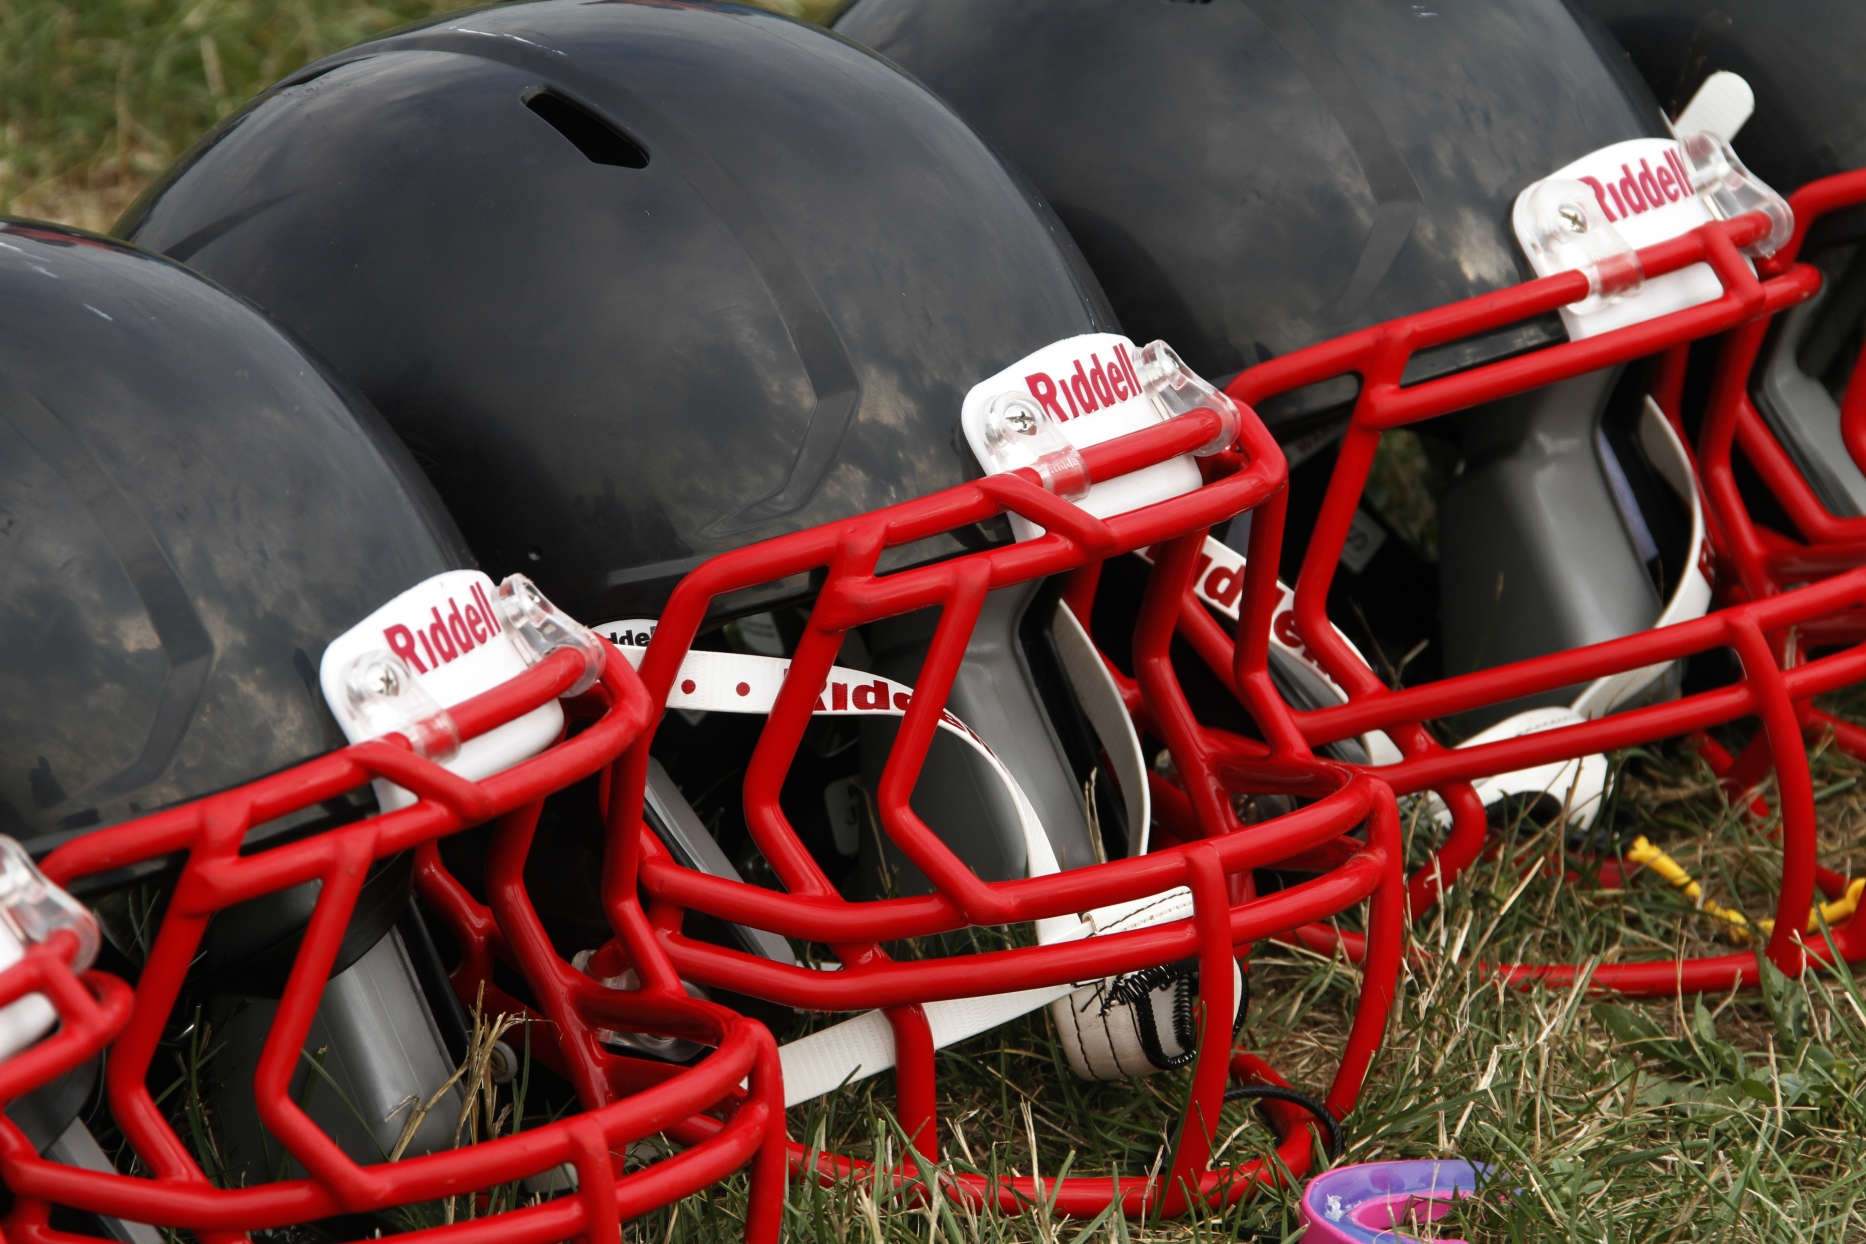 In August 2012, these are new football helmets that were given to a group of youth football players from the Akron Parents Pee Wee Football League in Akron, Ohio. As a result of player's getting hurt, these helmets, partially sponsored by the NFL were given to thousands nationwide to improve player safety.